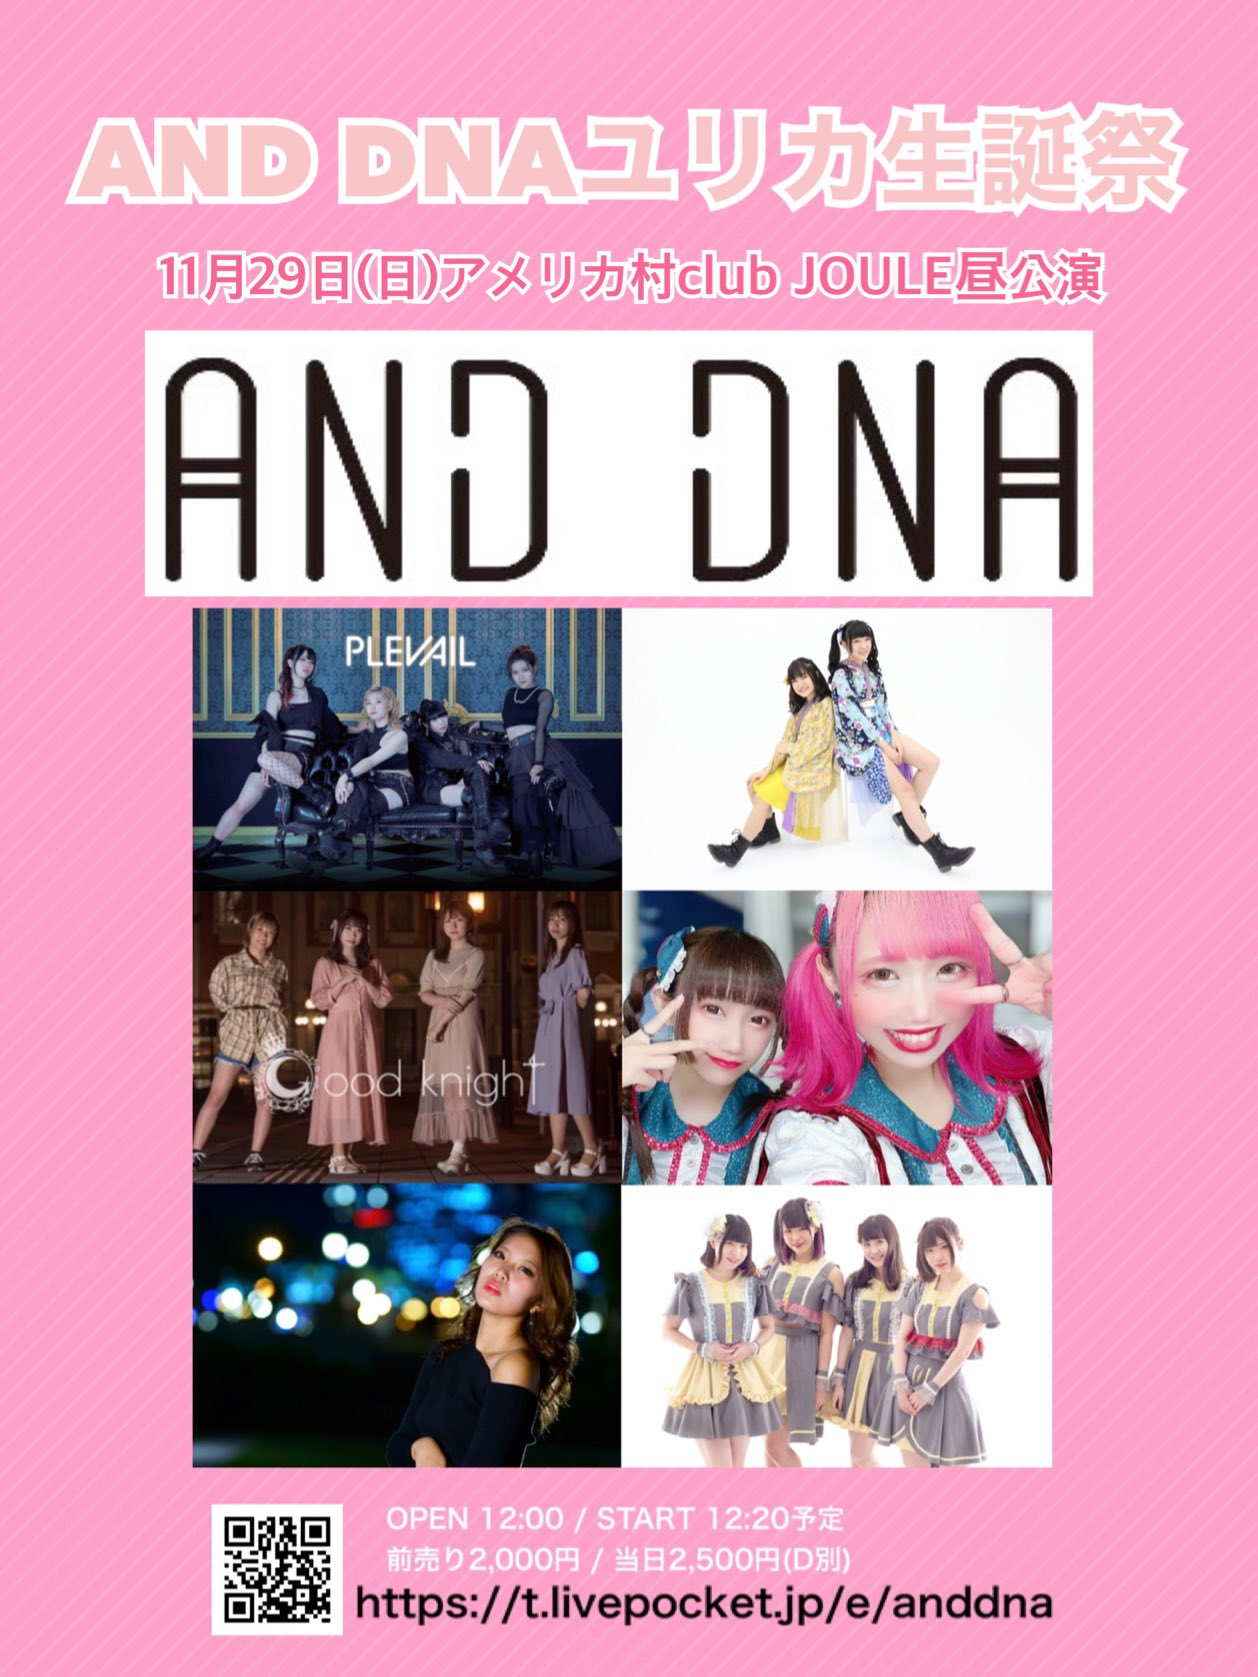 AND DNA ユリカ生誕祭